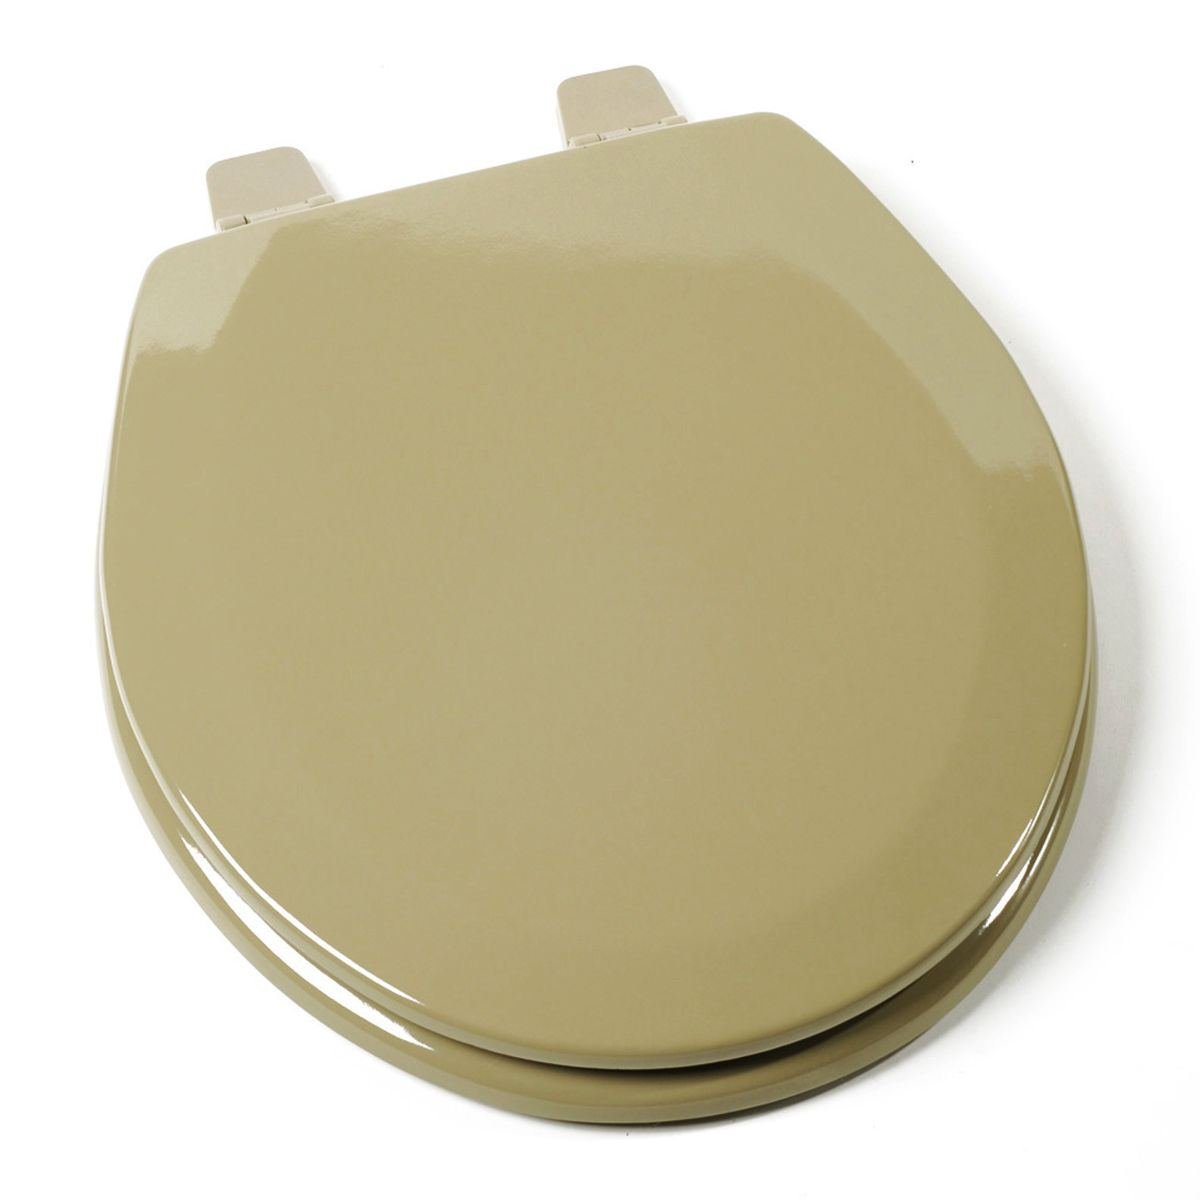 Trendy Deluxe Toilet Seat Standard Size Avocado Green Round Wood Adjustable Hinges Great For Your Bathroom Toilet